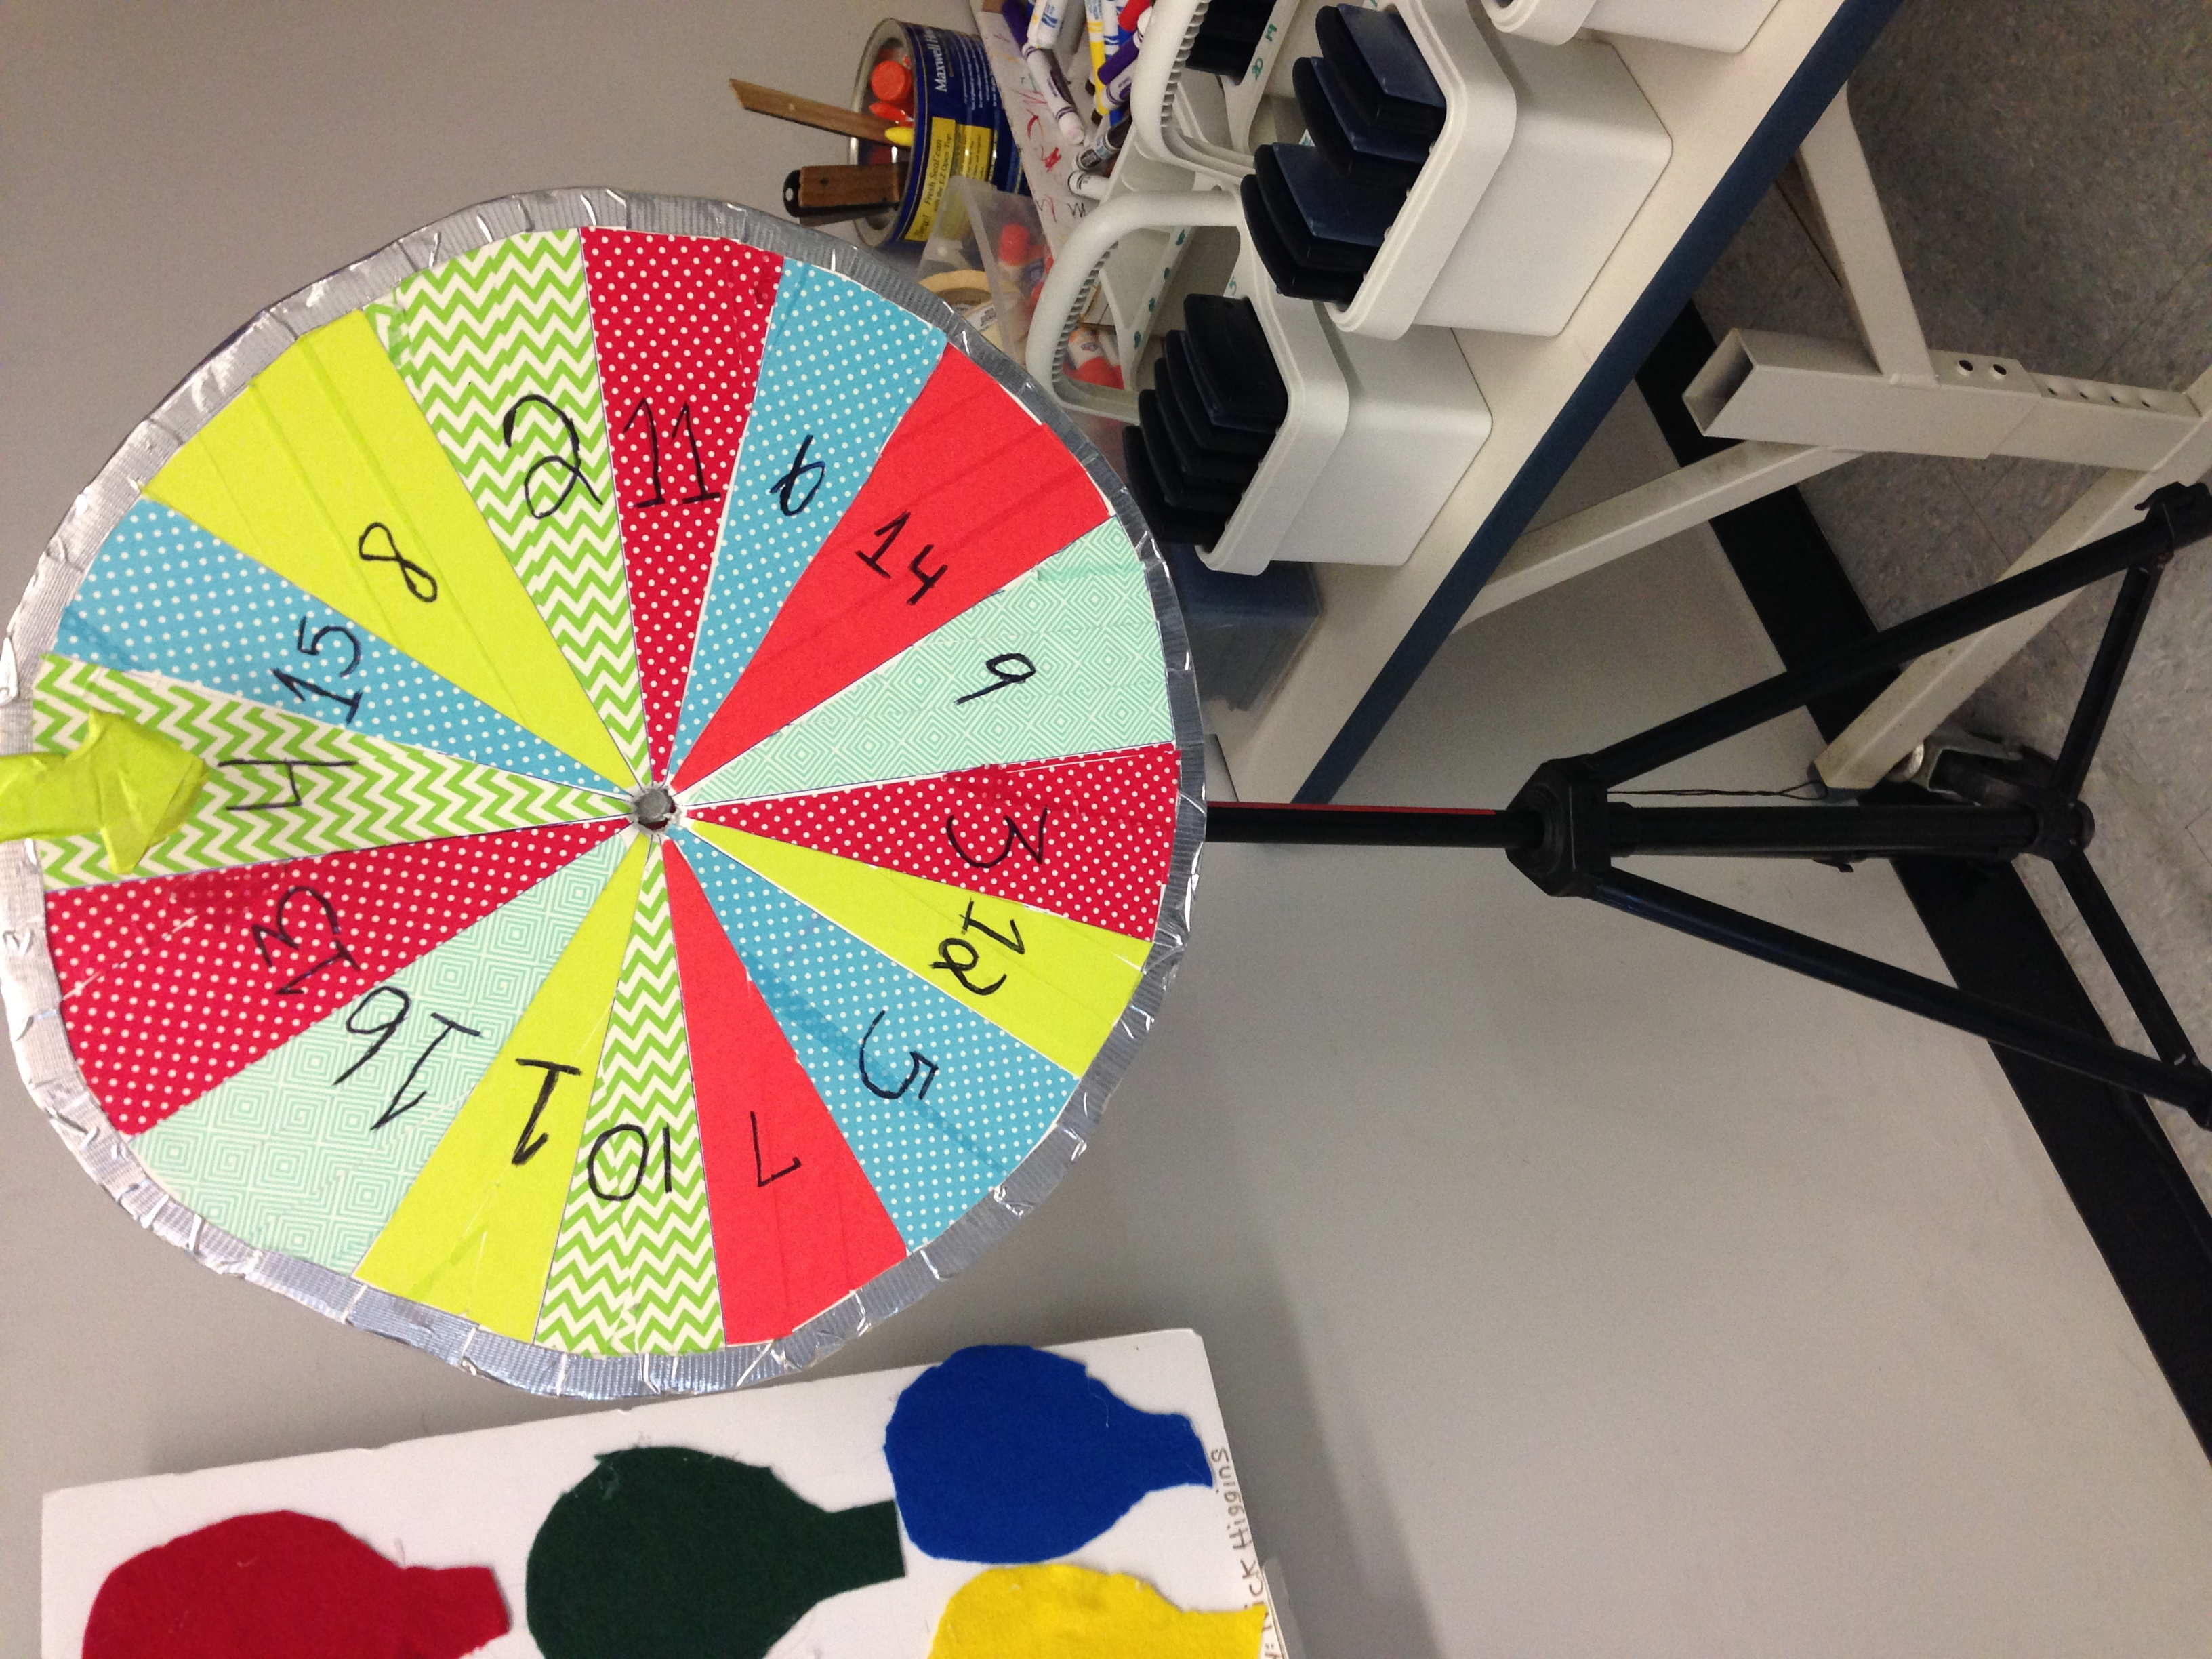 The math work and the rules of the game are usually handed in separately for this project.